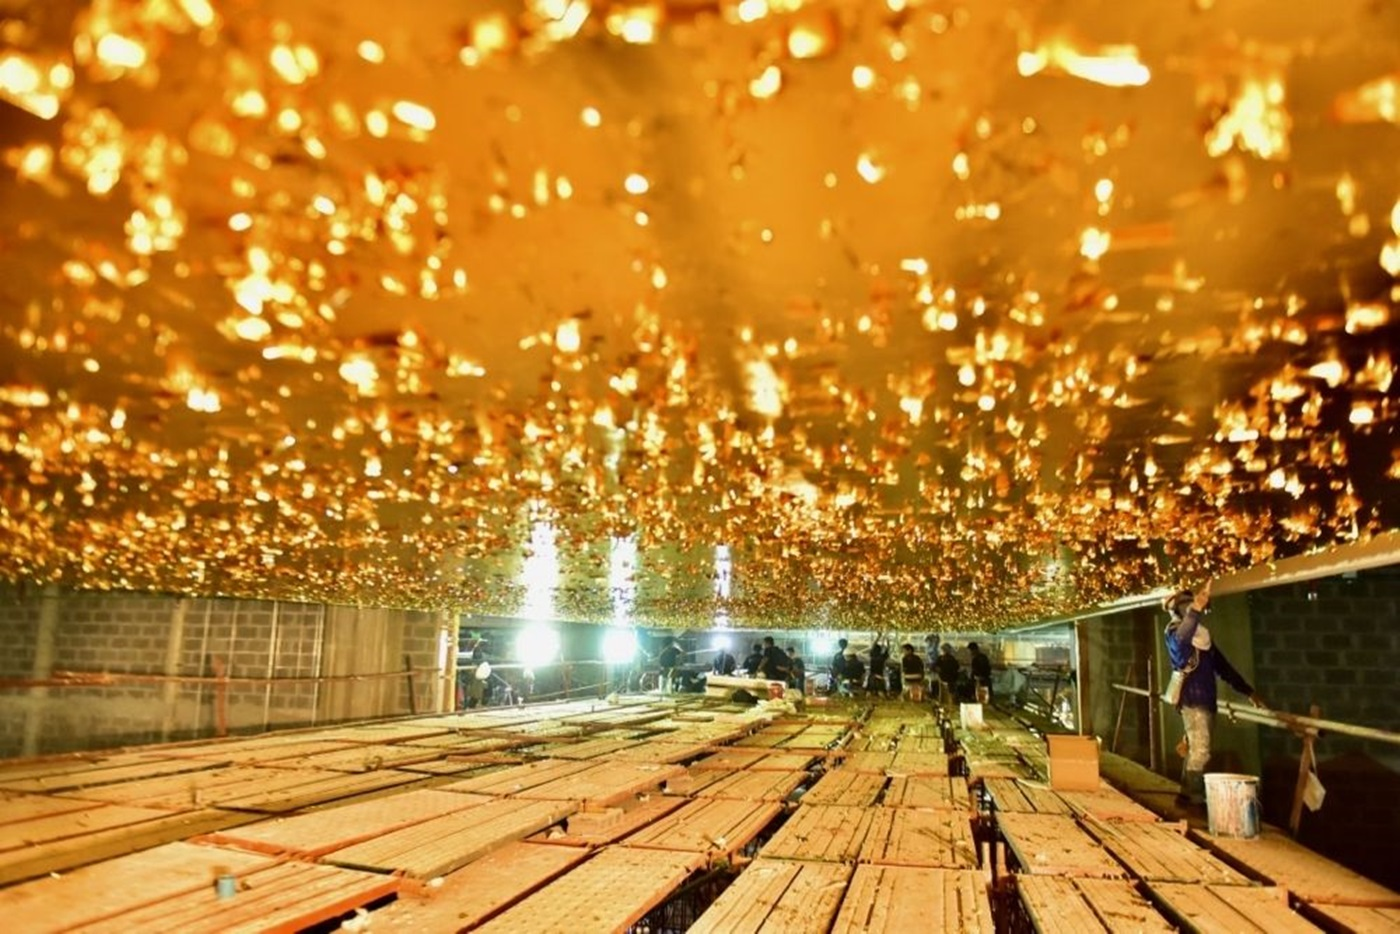 Gold leaf ceiling in ICONLUXE / ICONSIAM, Bangkok